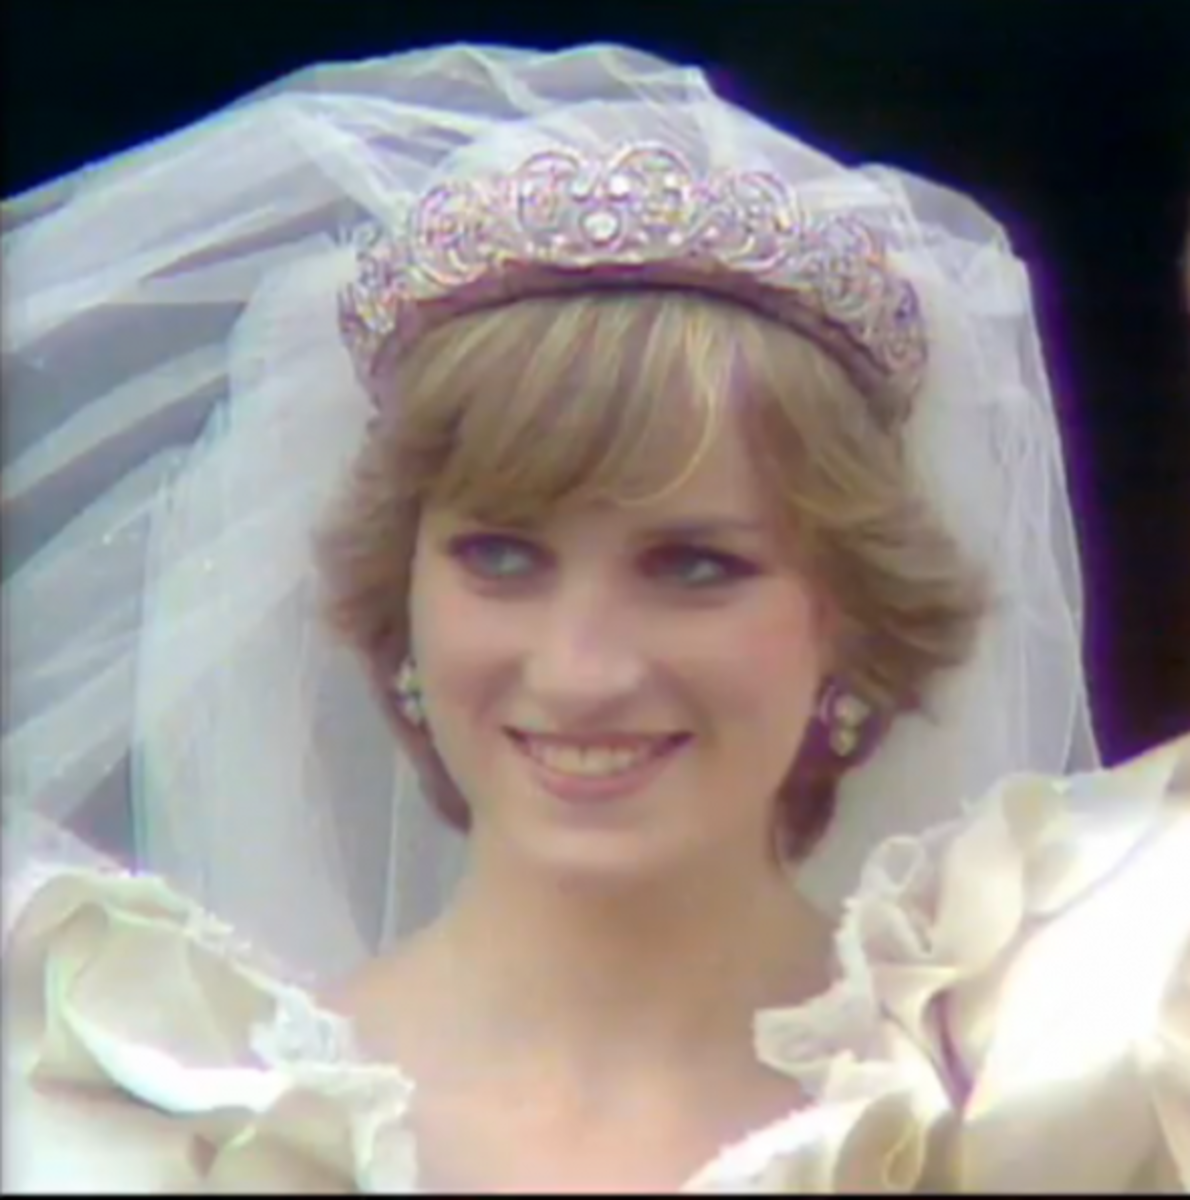 Princess Diana - the People's Princess